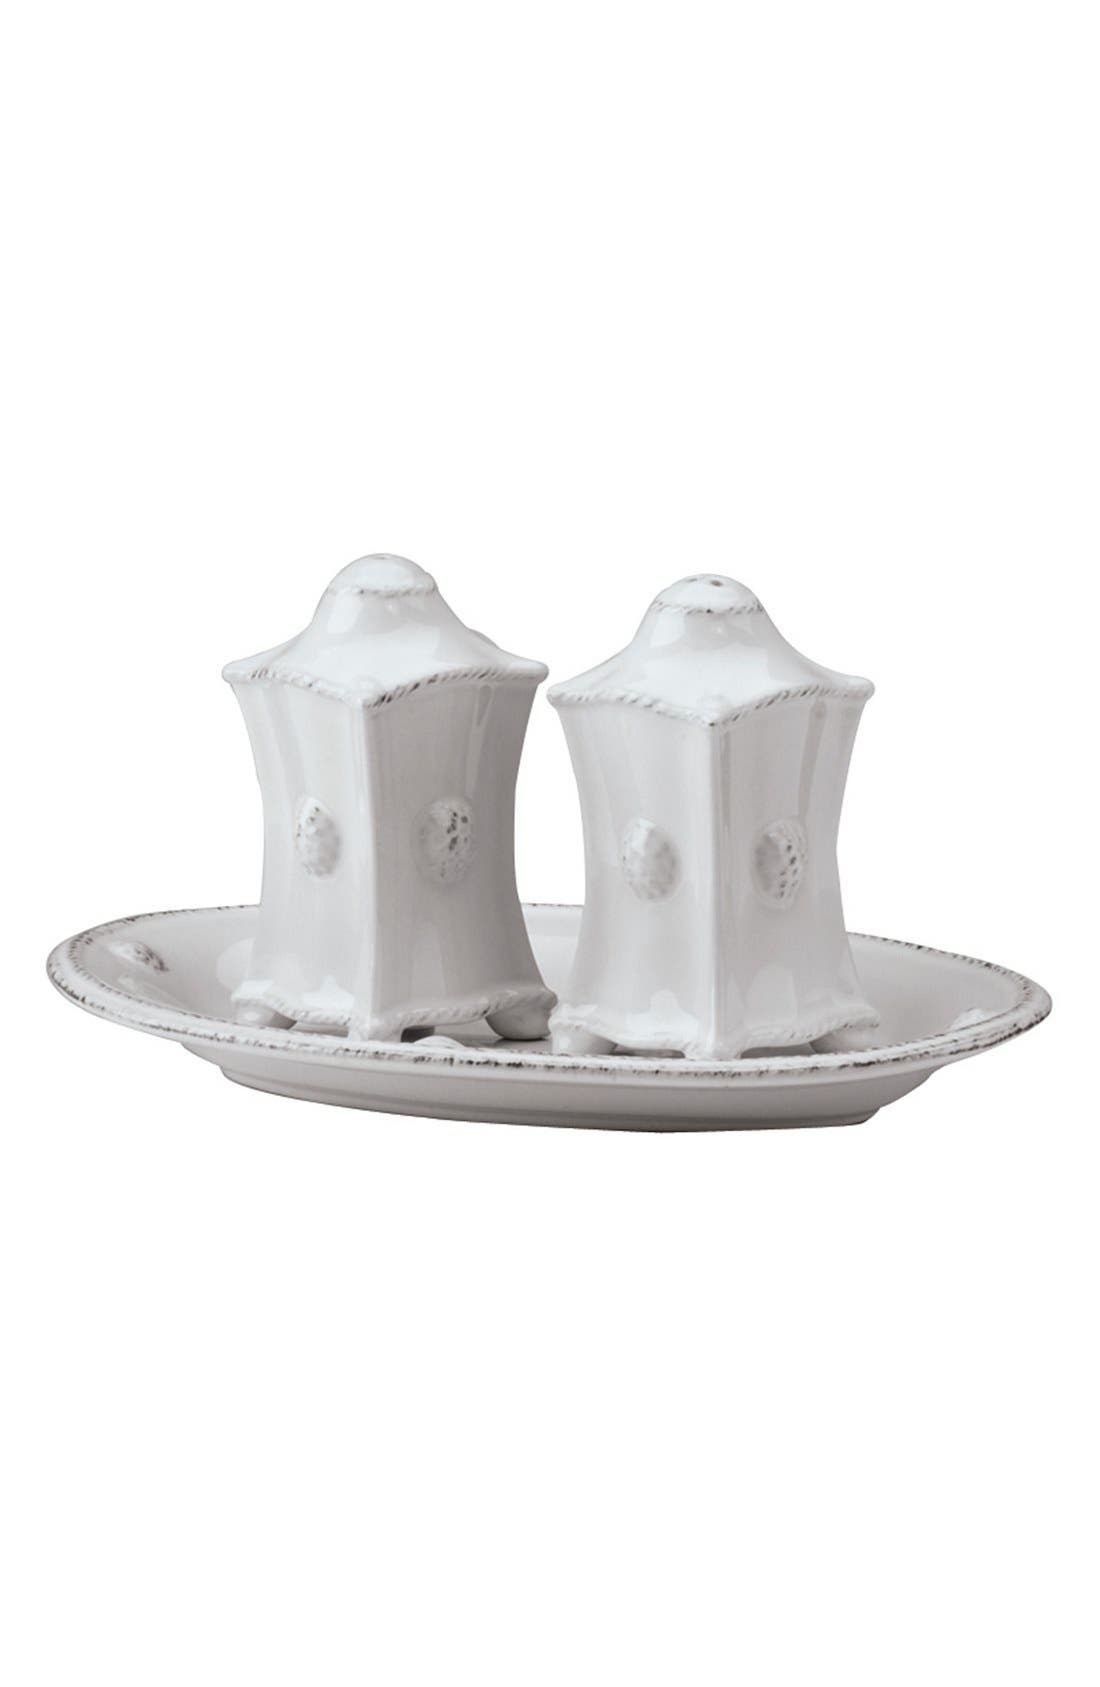 'Berry and Thread' CeramicSalt & Pepper Shakers,                         Main,                         color, Whitewash